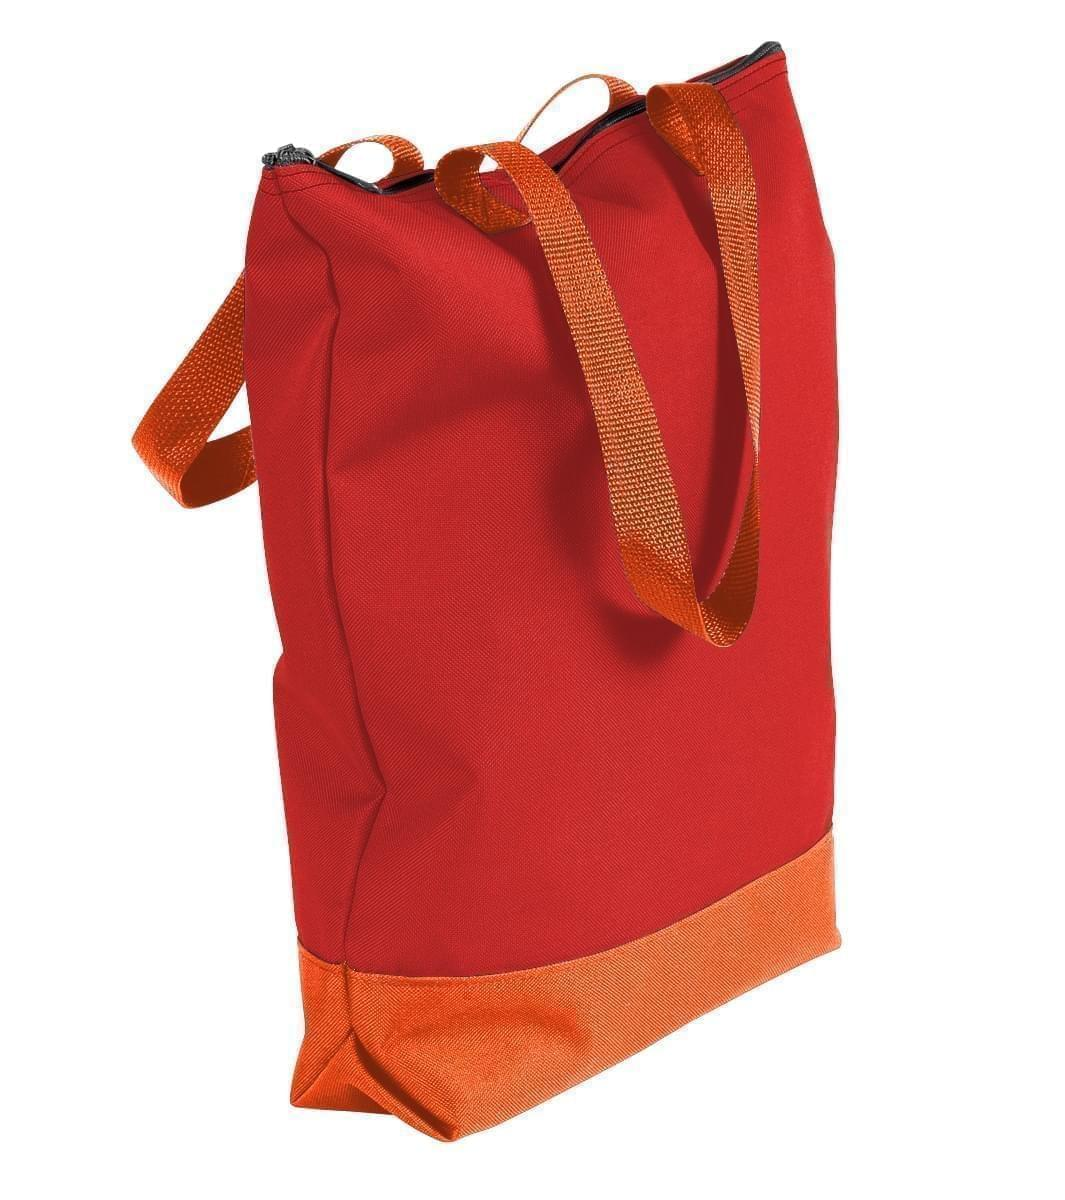 USA Made Canvas Portfolio Tote Bags, Red-Orange, 1AAMX1UAE0